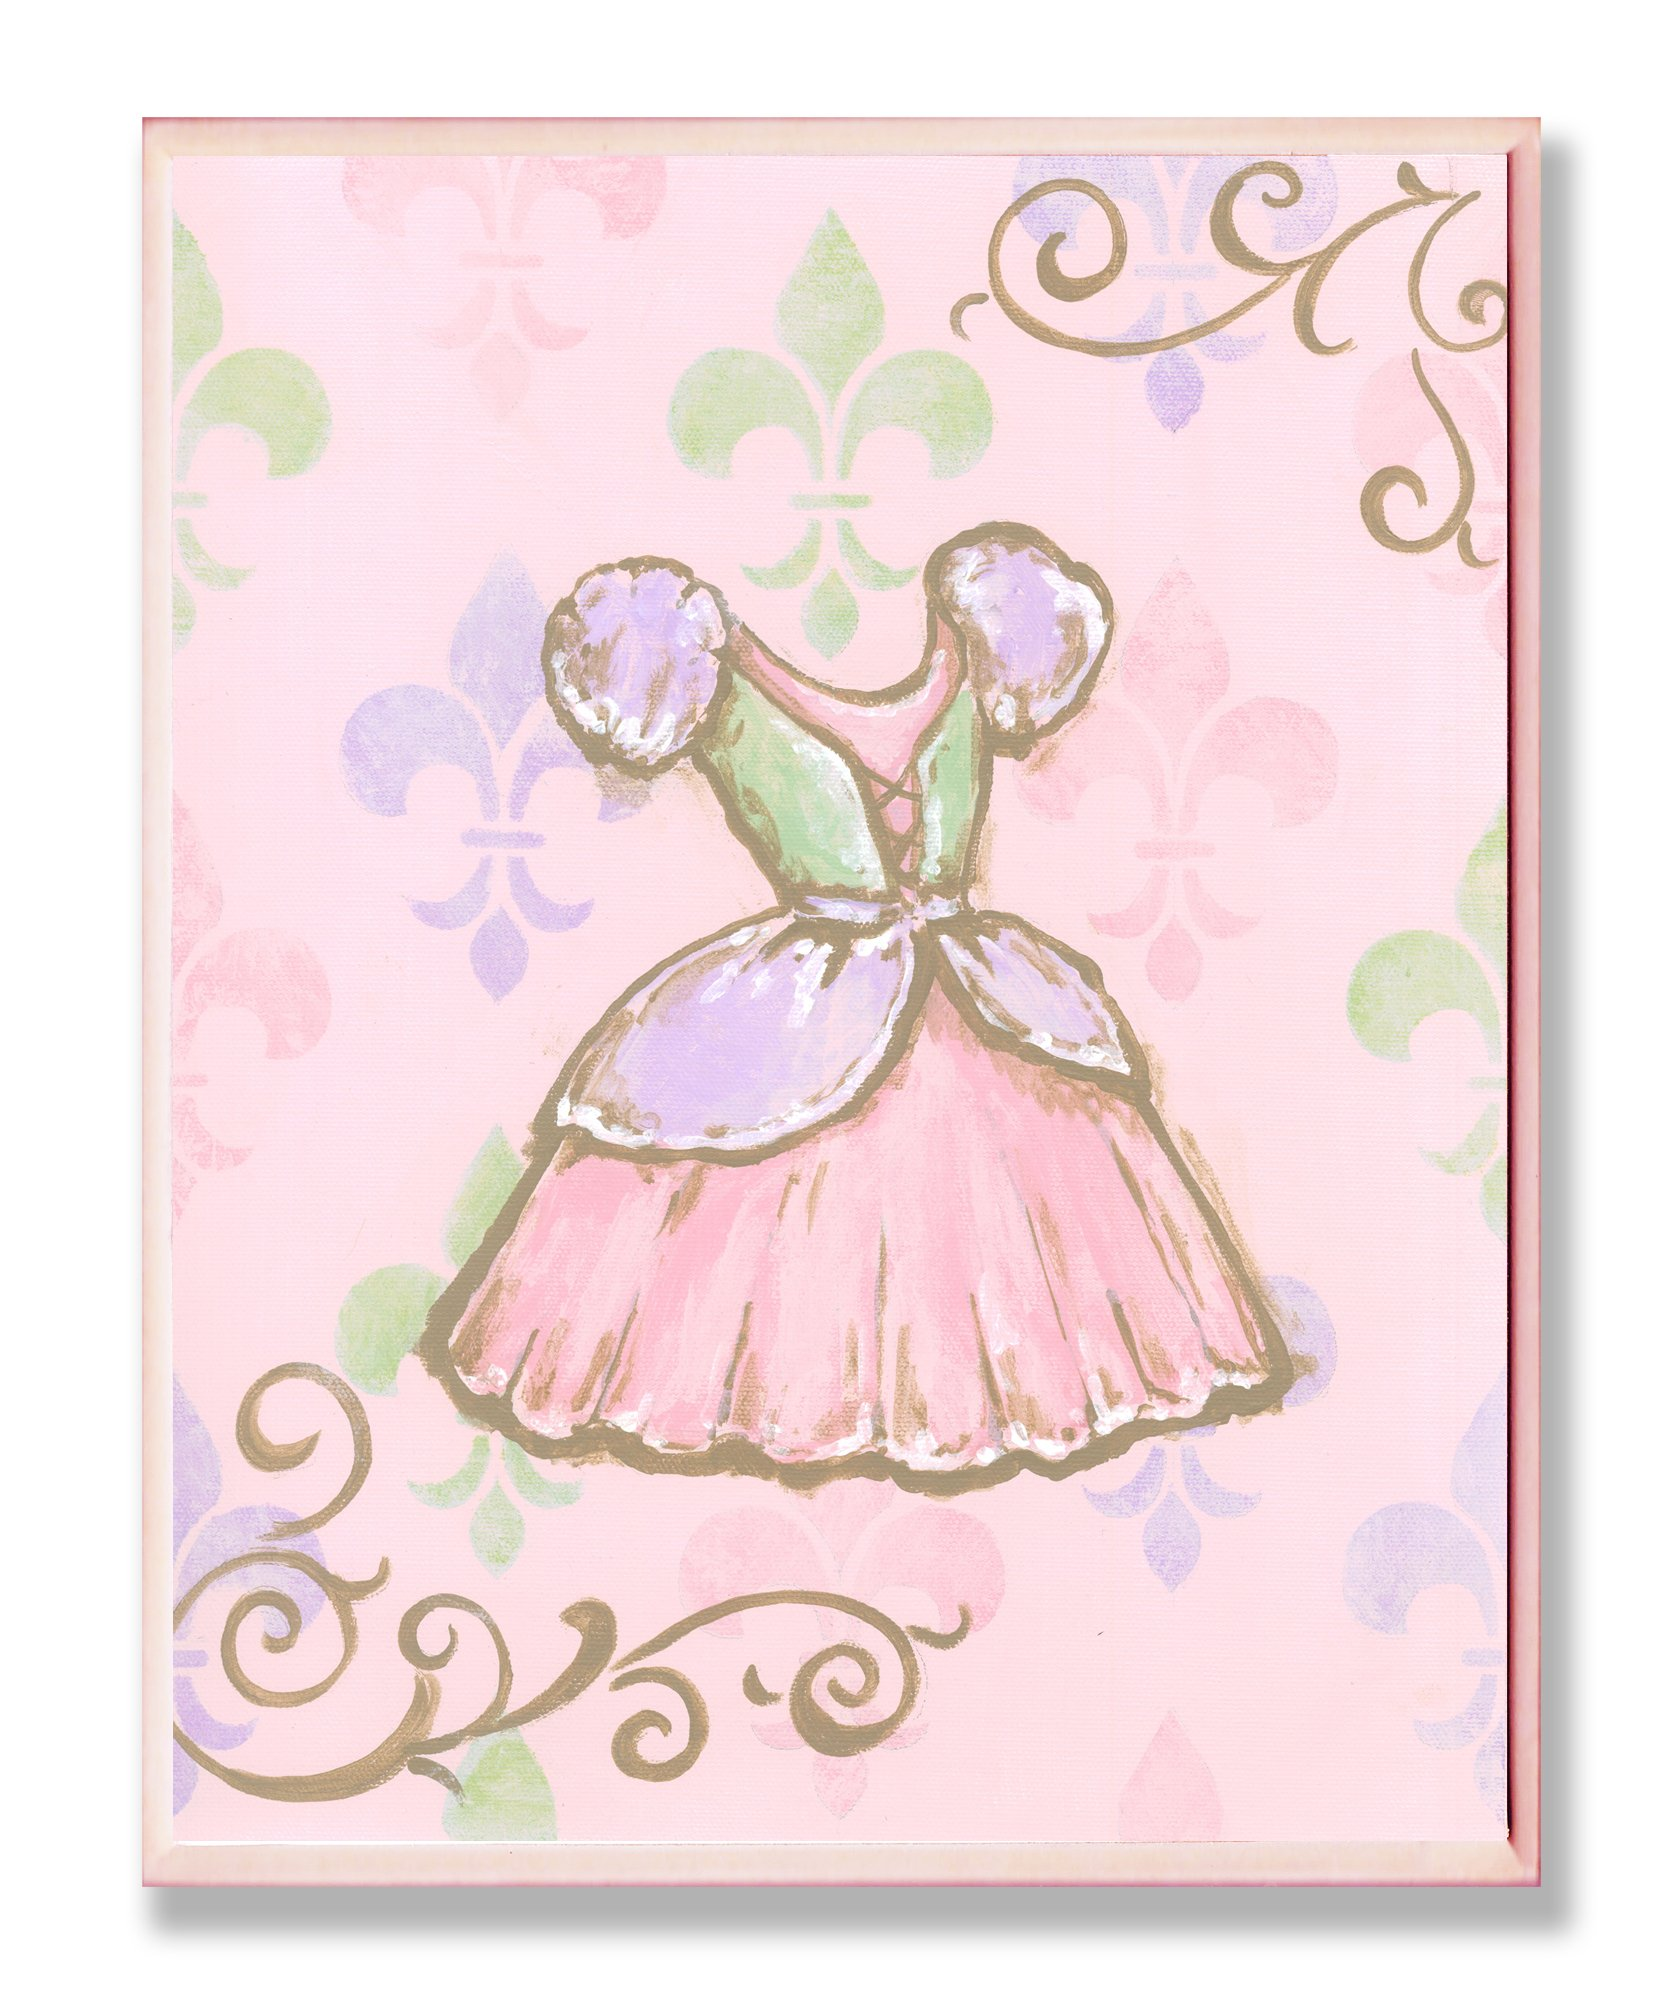 The Kids Room by Stupell Princess Dress with Fleur de Lis on Pink Background Rectangle Wall Plaque by The Kids Room by Stupell